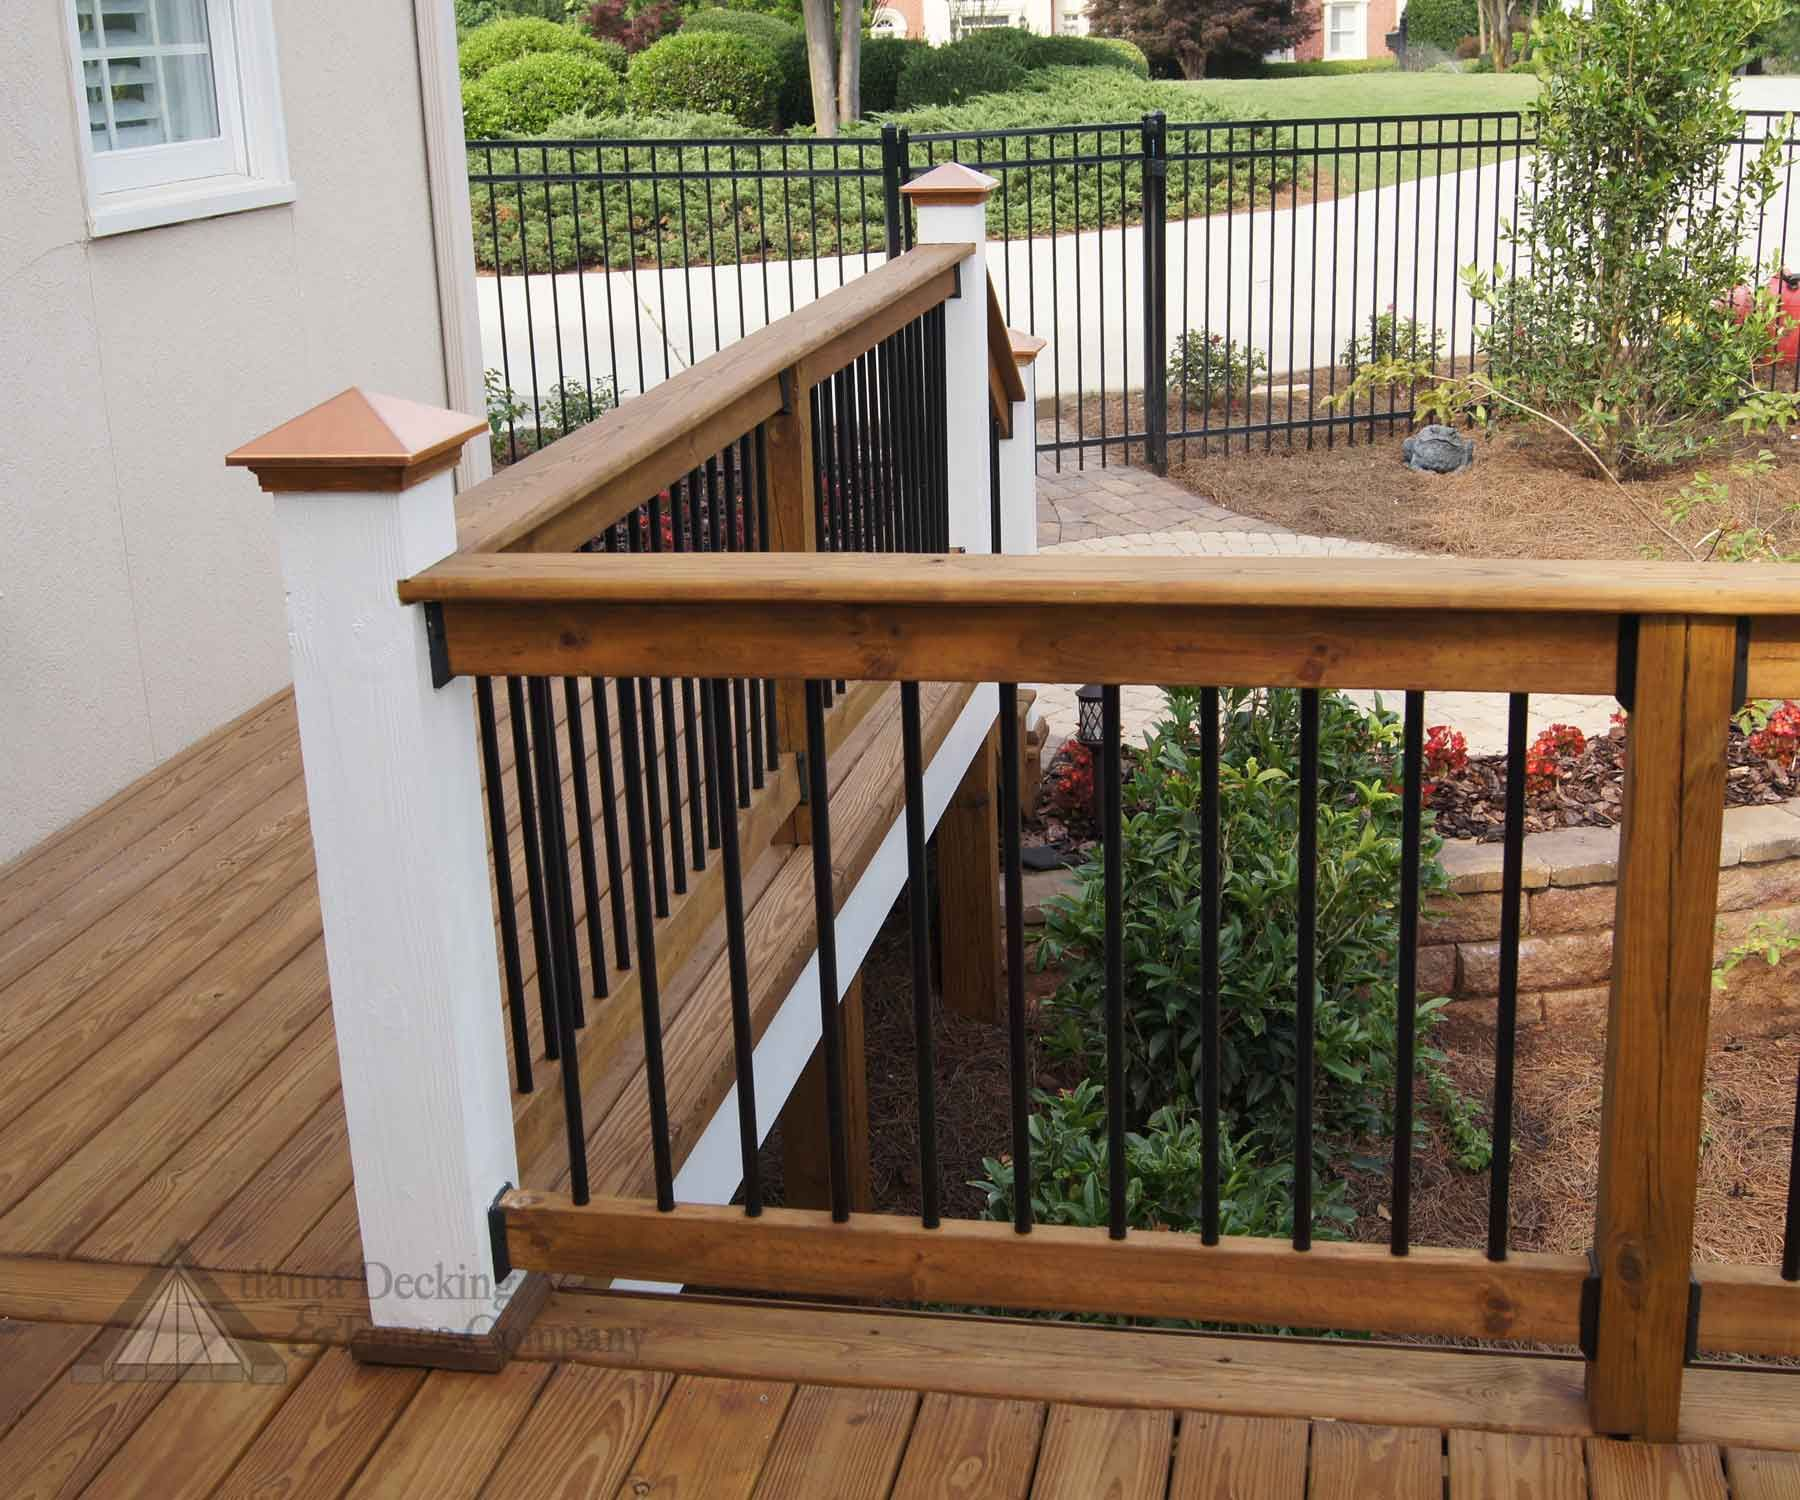 Modern handrail outdoor wallpaper deck railing ideas for Front entry decks